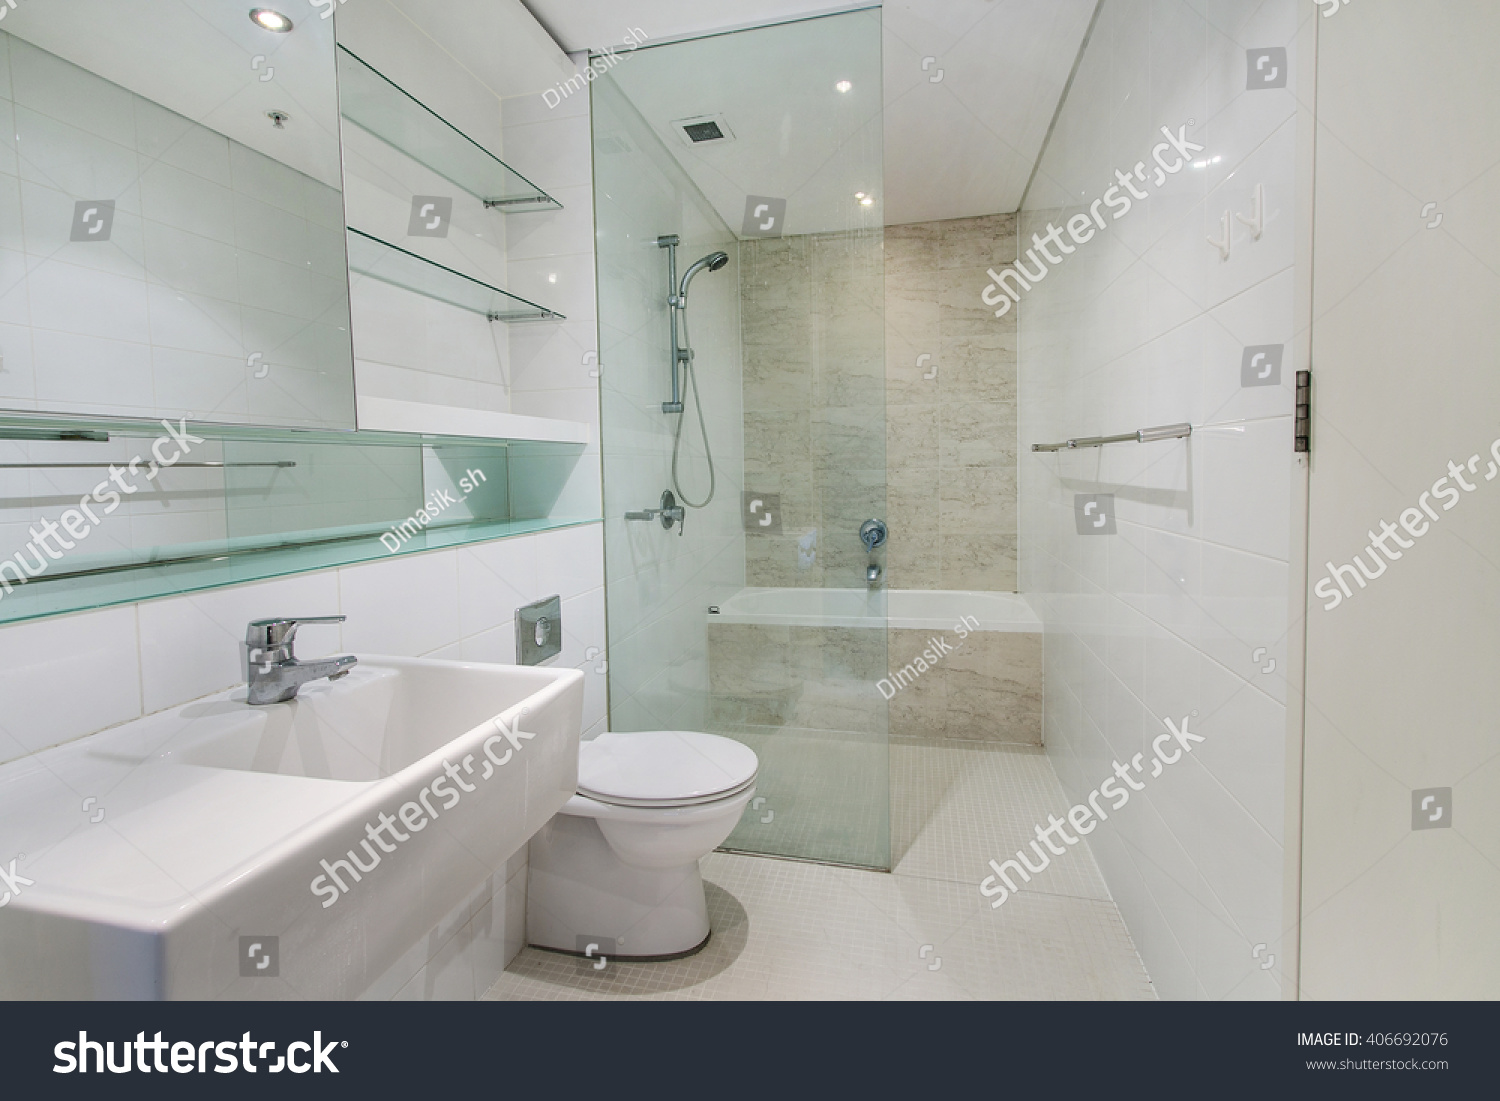 modern bathroom luxury apartment stock photo 406692076 shutterstock. Black Bedroom Furniture Sets. Home Design Ideas